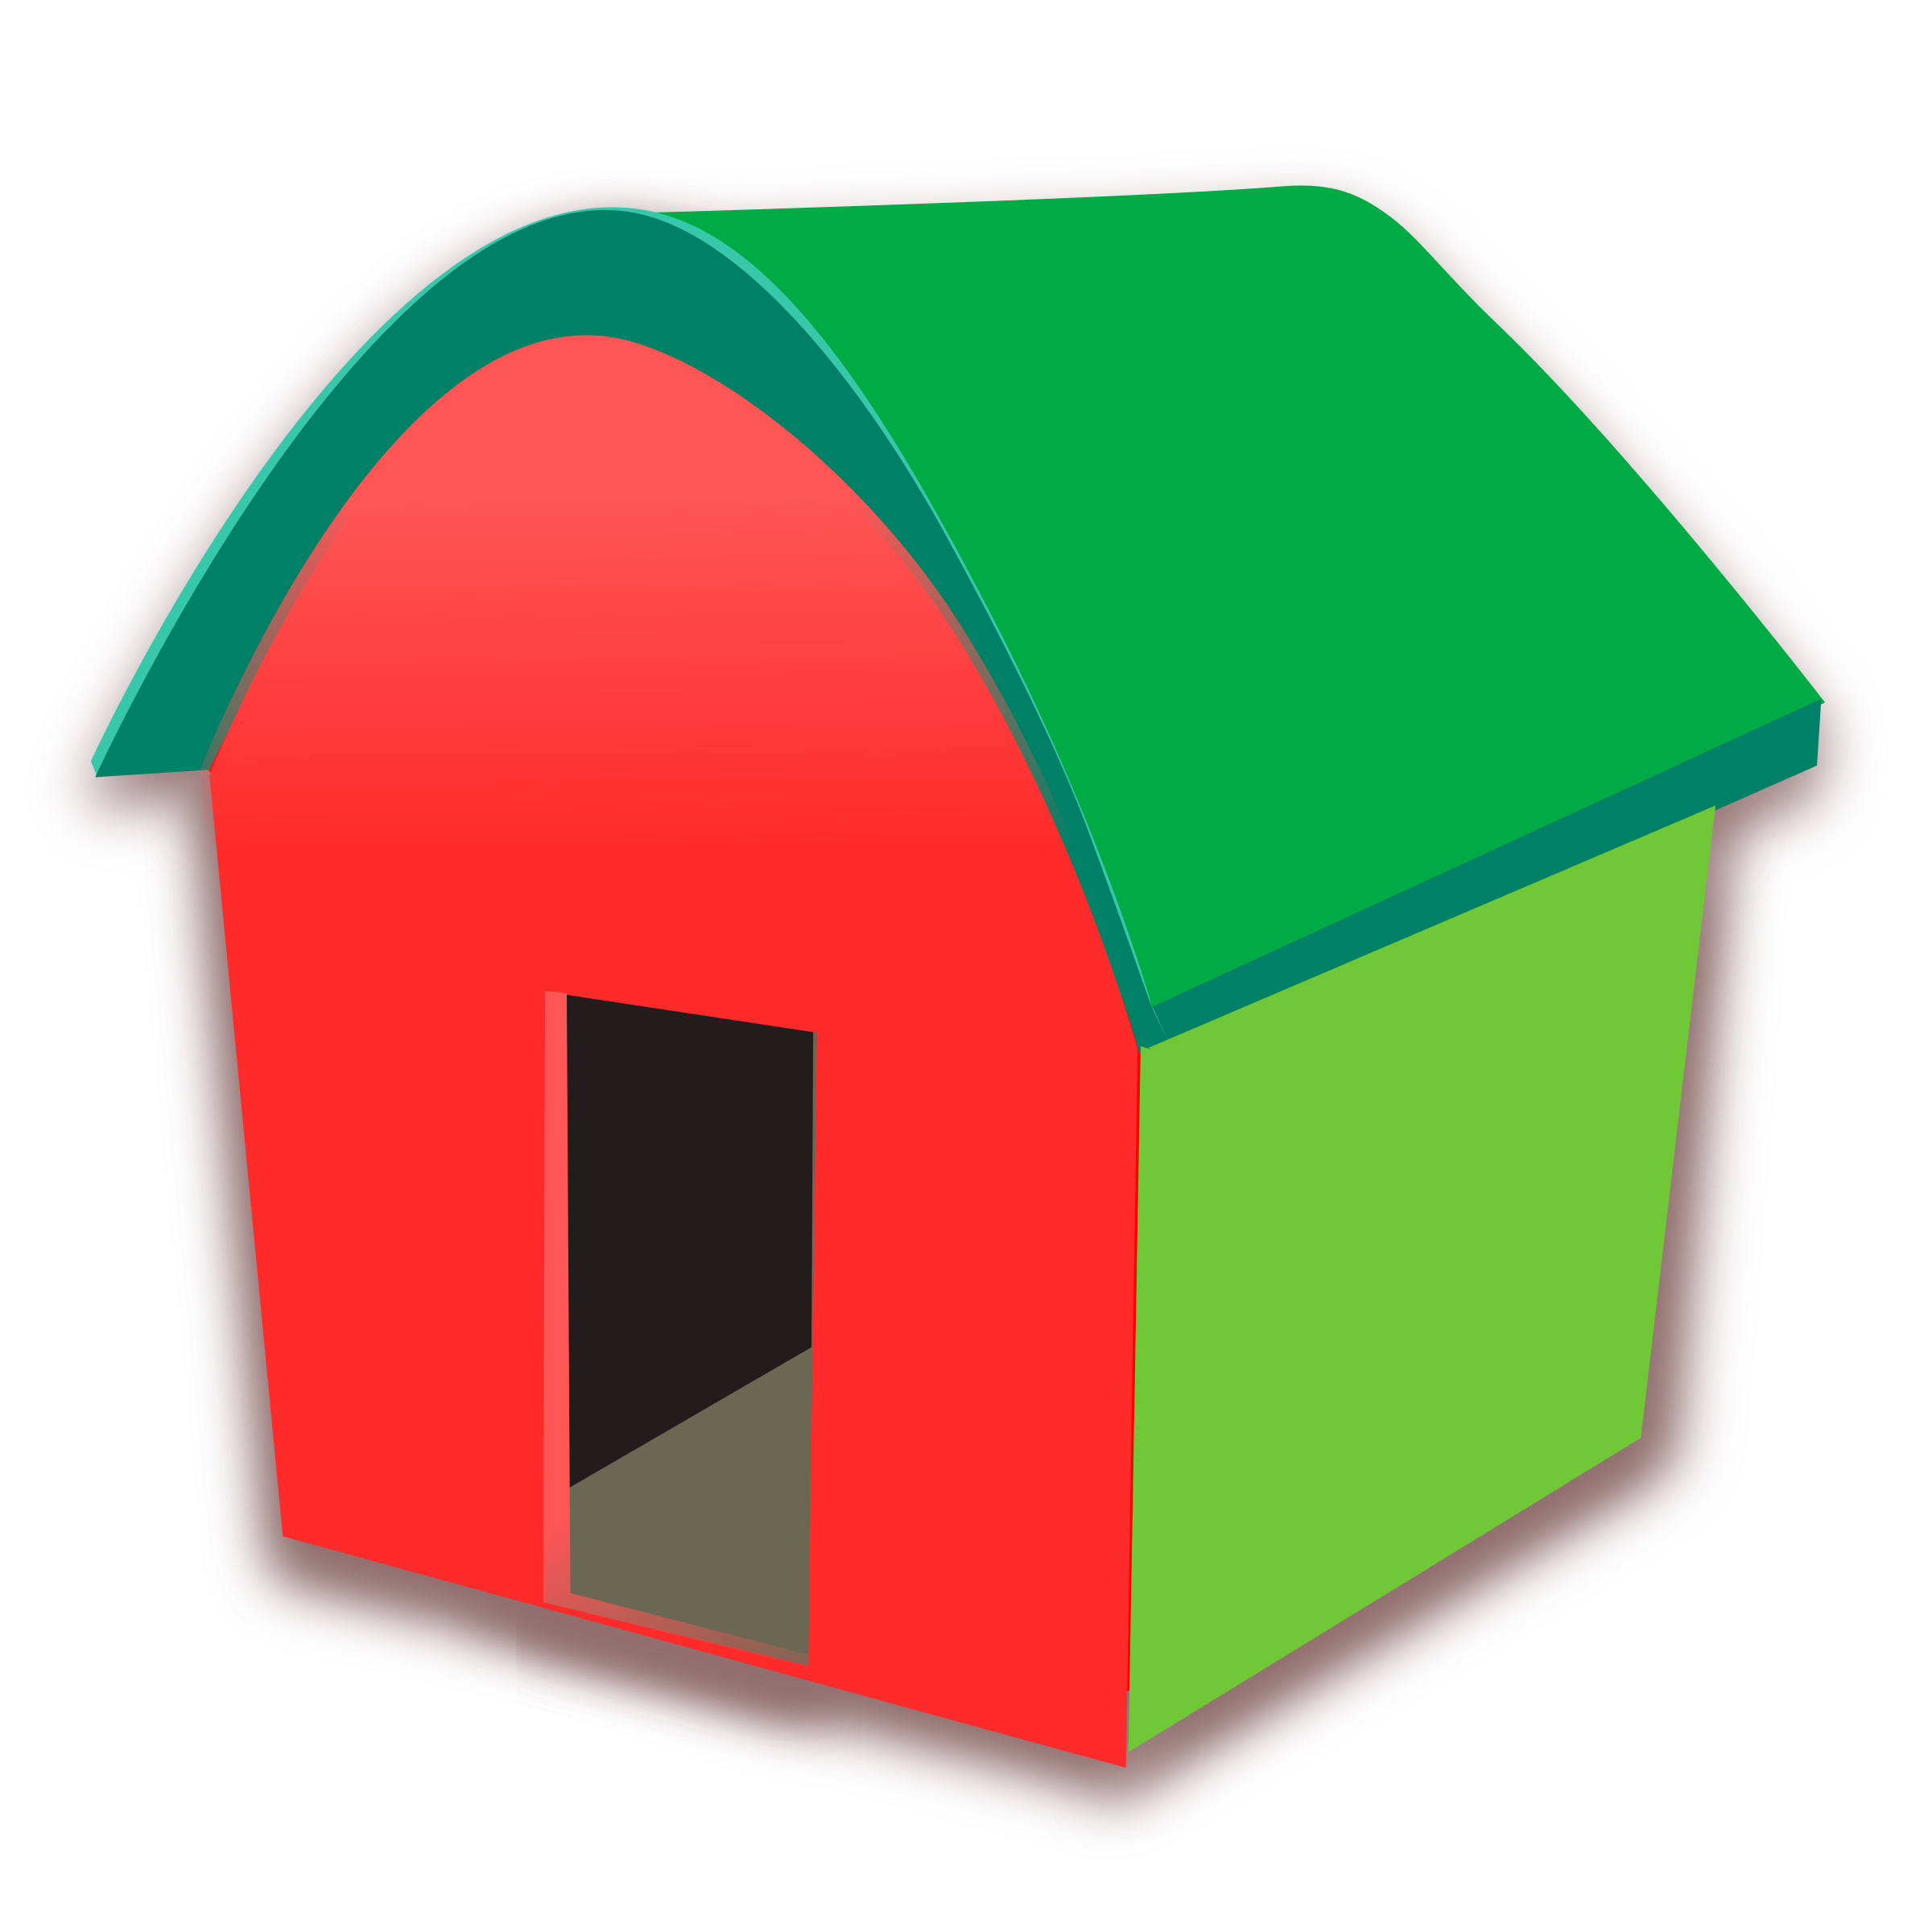 Doghouse clipart clip art. Realestate big image png